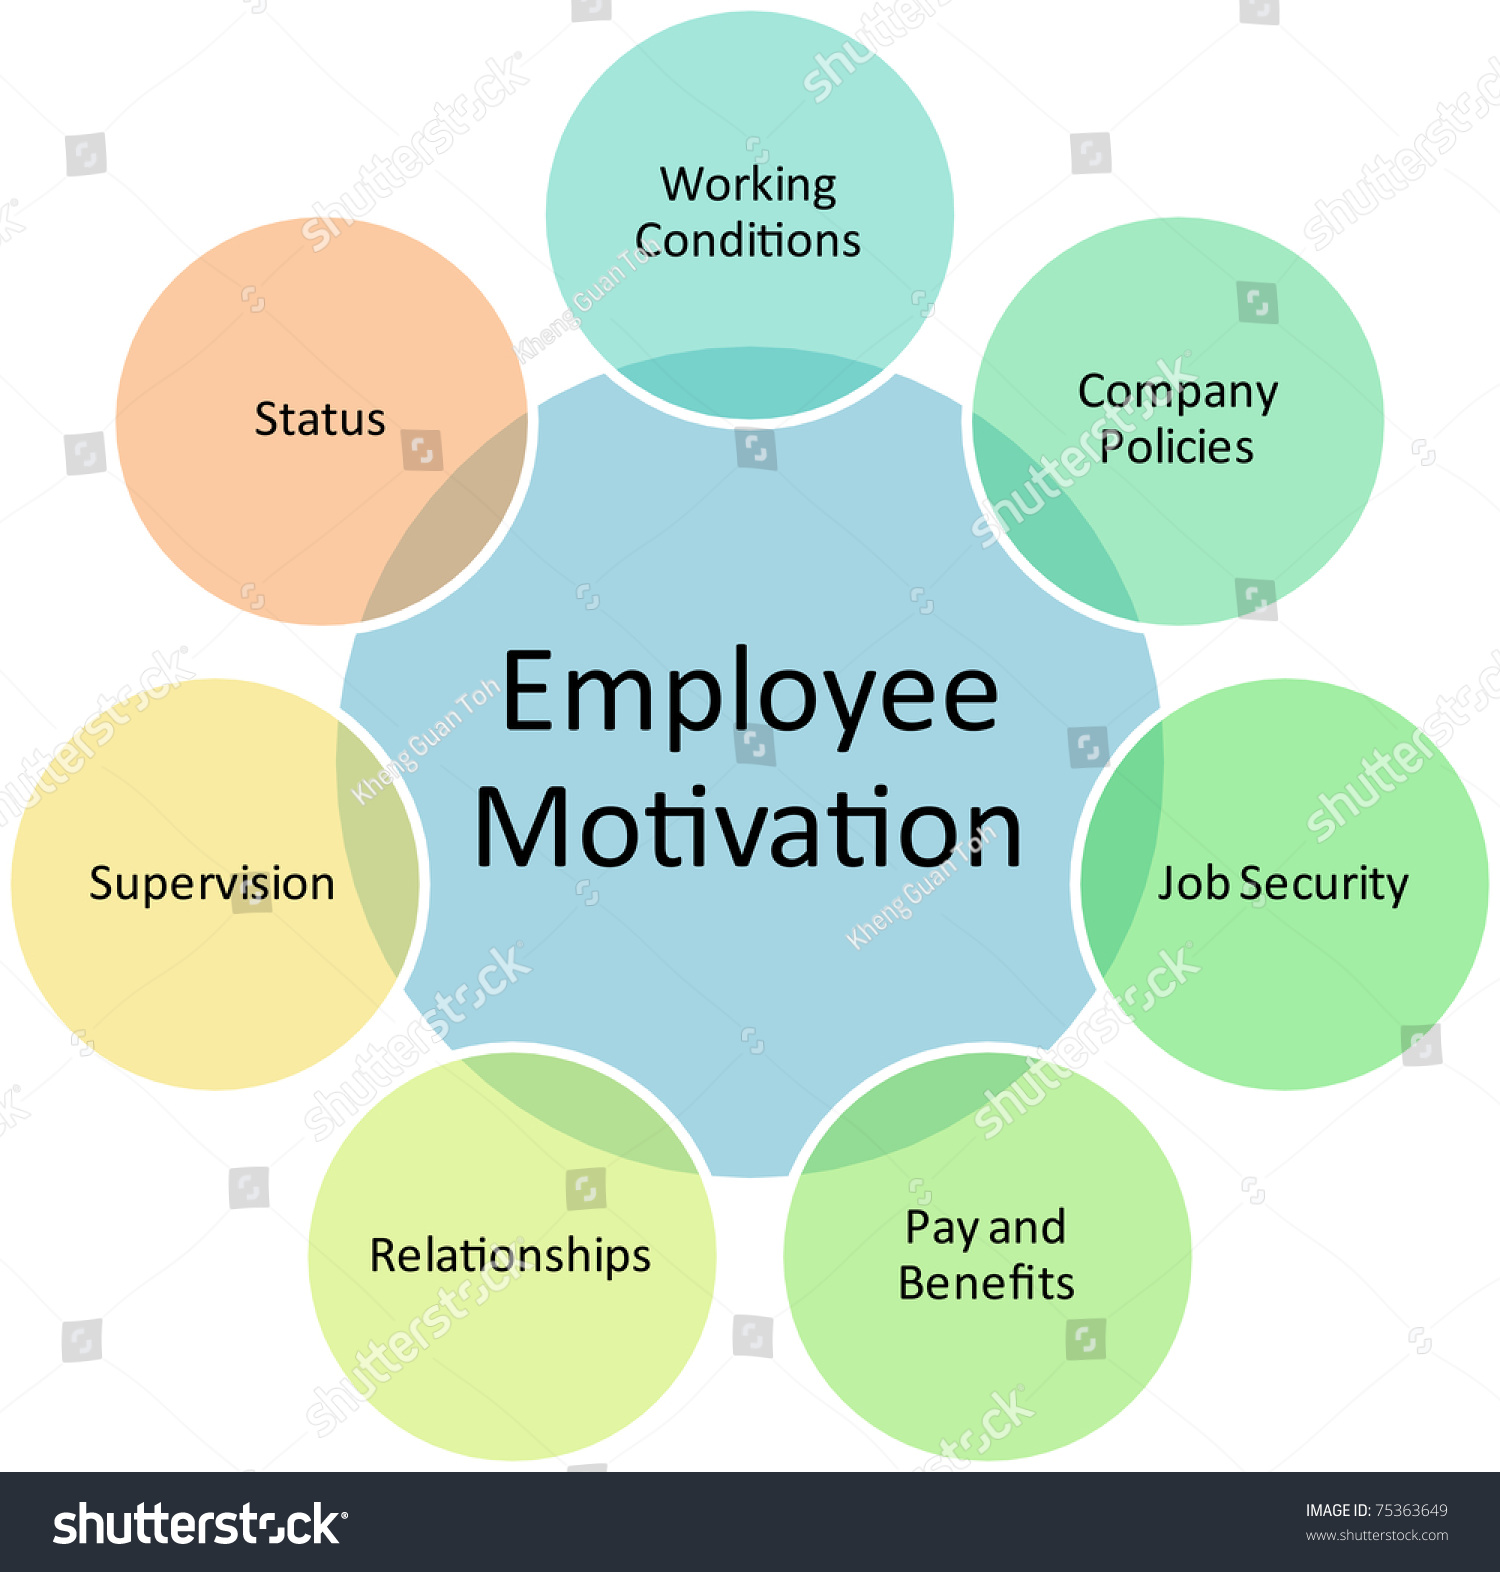 employee motivation business diagram management strategy stock employee motivation business diagram management strategy concept chart illustration